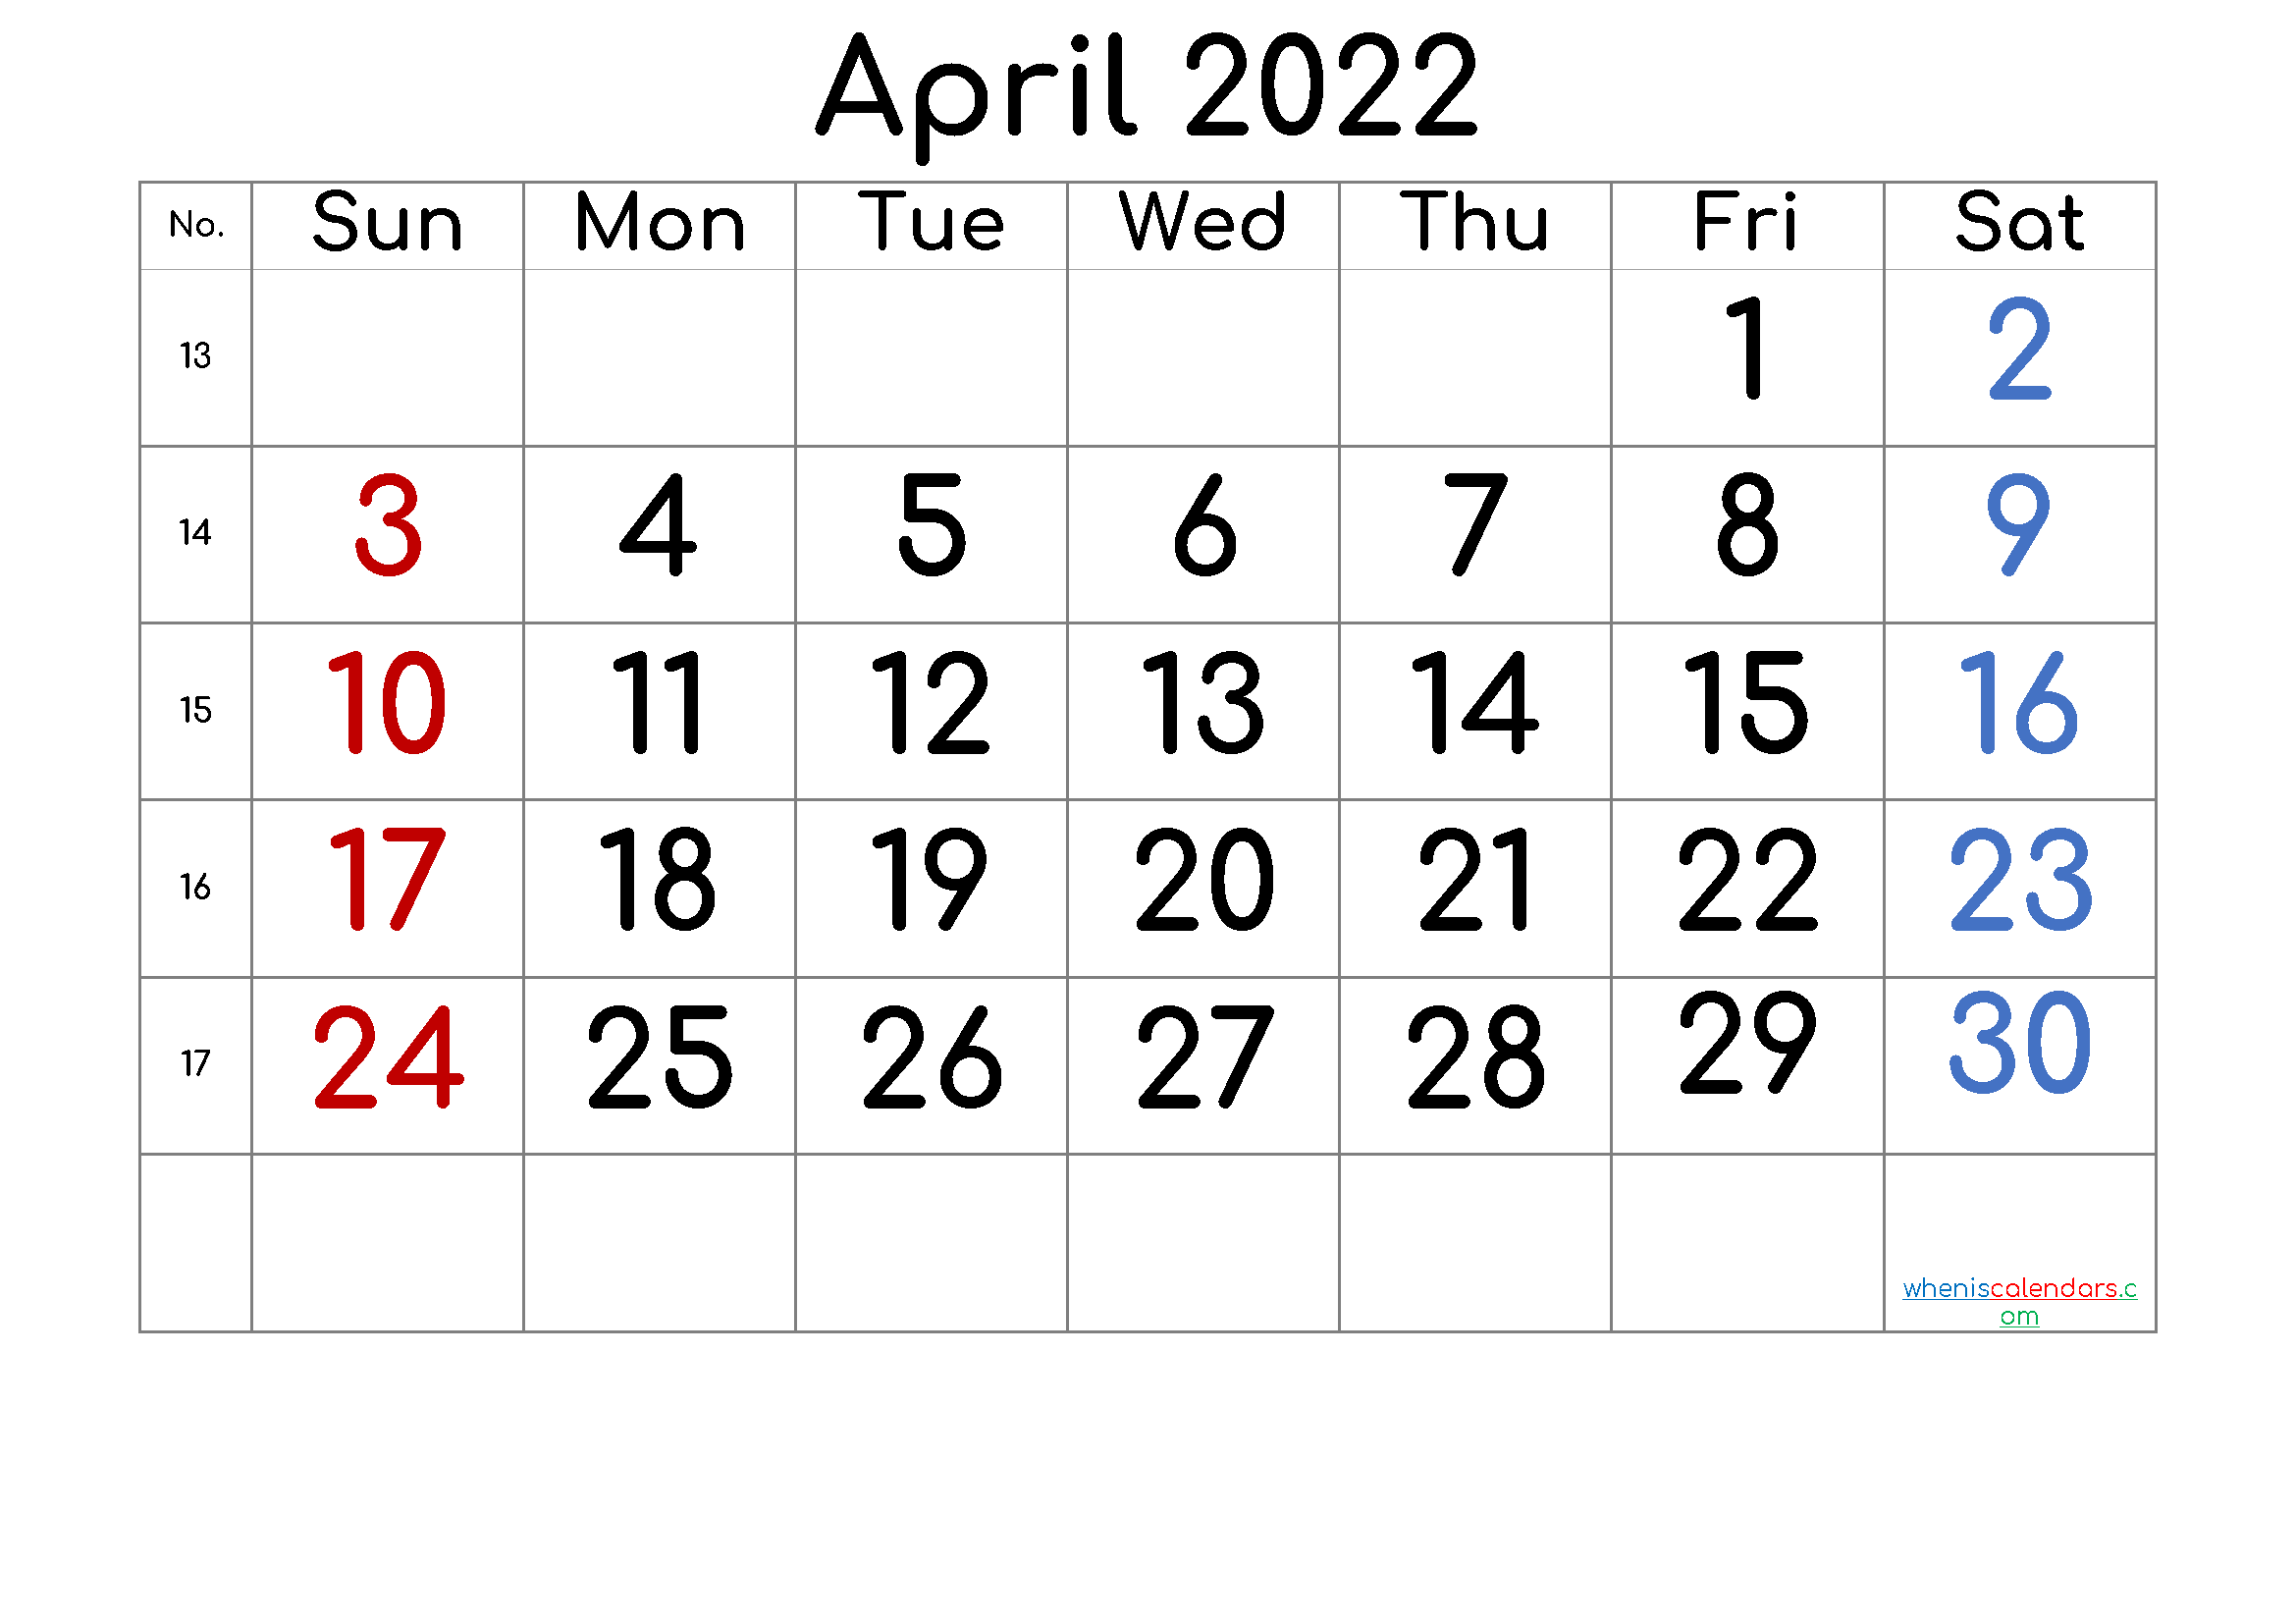 April 2022 Printable Calendar with Week Numbers